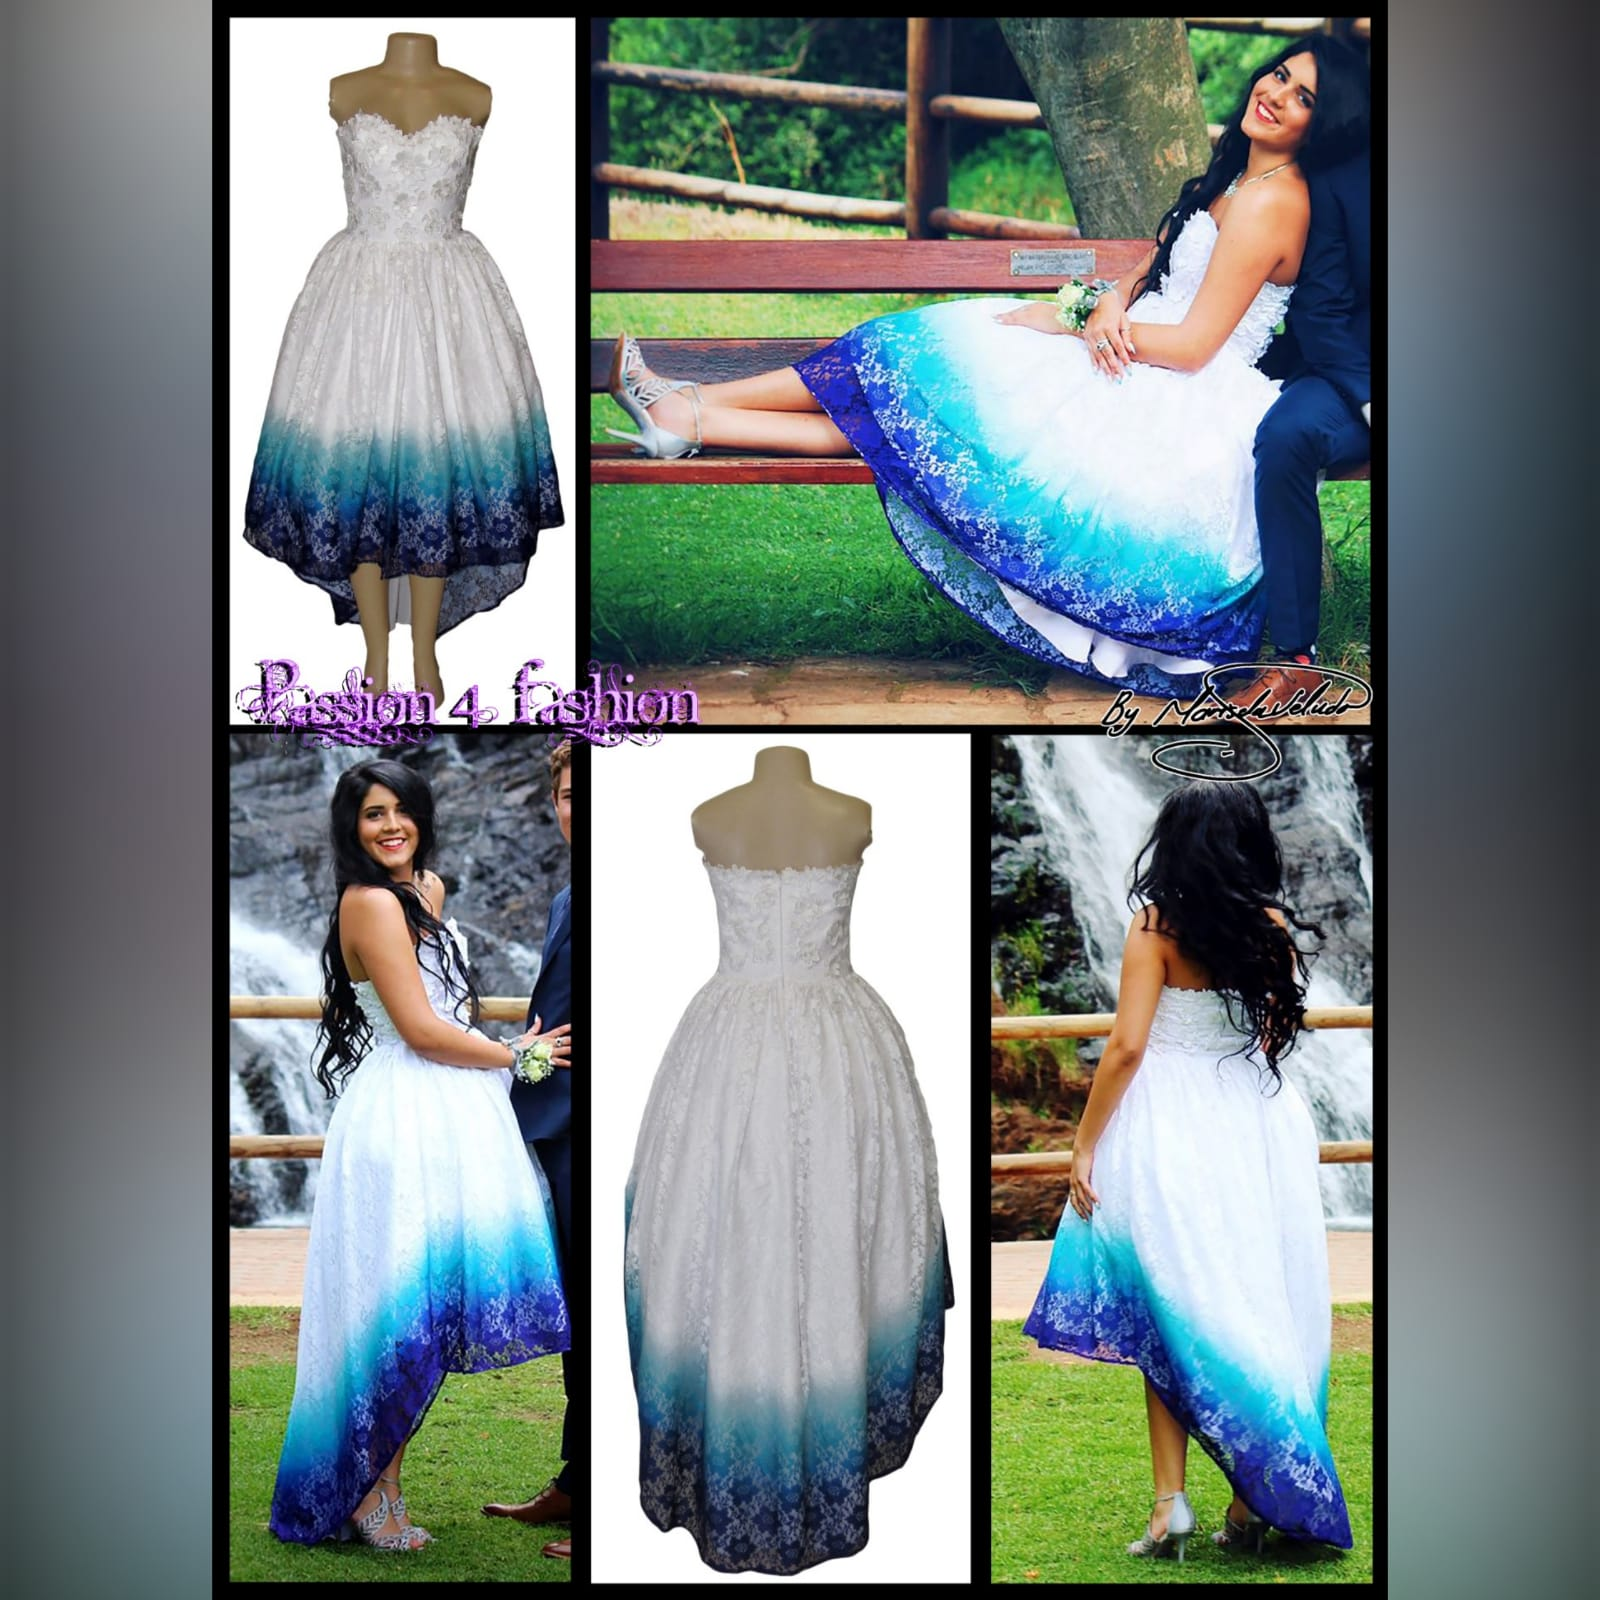 White ombre high low boob tube lace prom dress 5 white ombre high low boob tube lace dress, in blue, purple and turquoise with 3d lace detail on the bodice. Sweetheart neckline, straight back and a bit of volume.